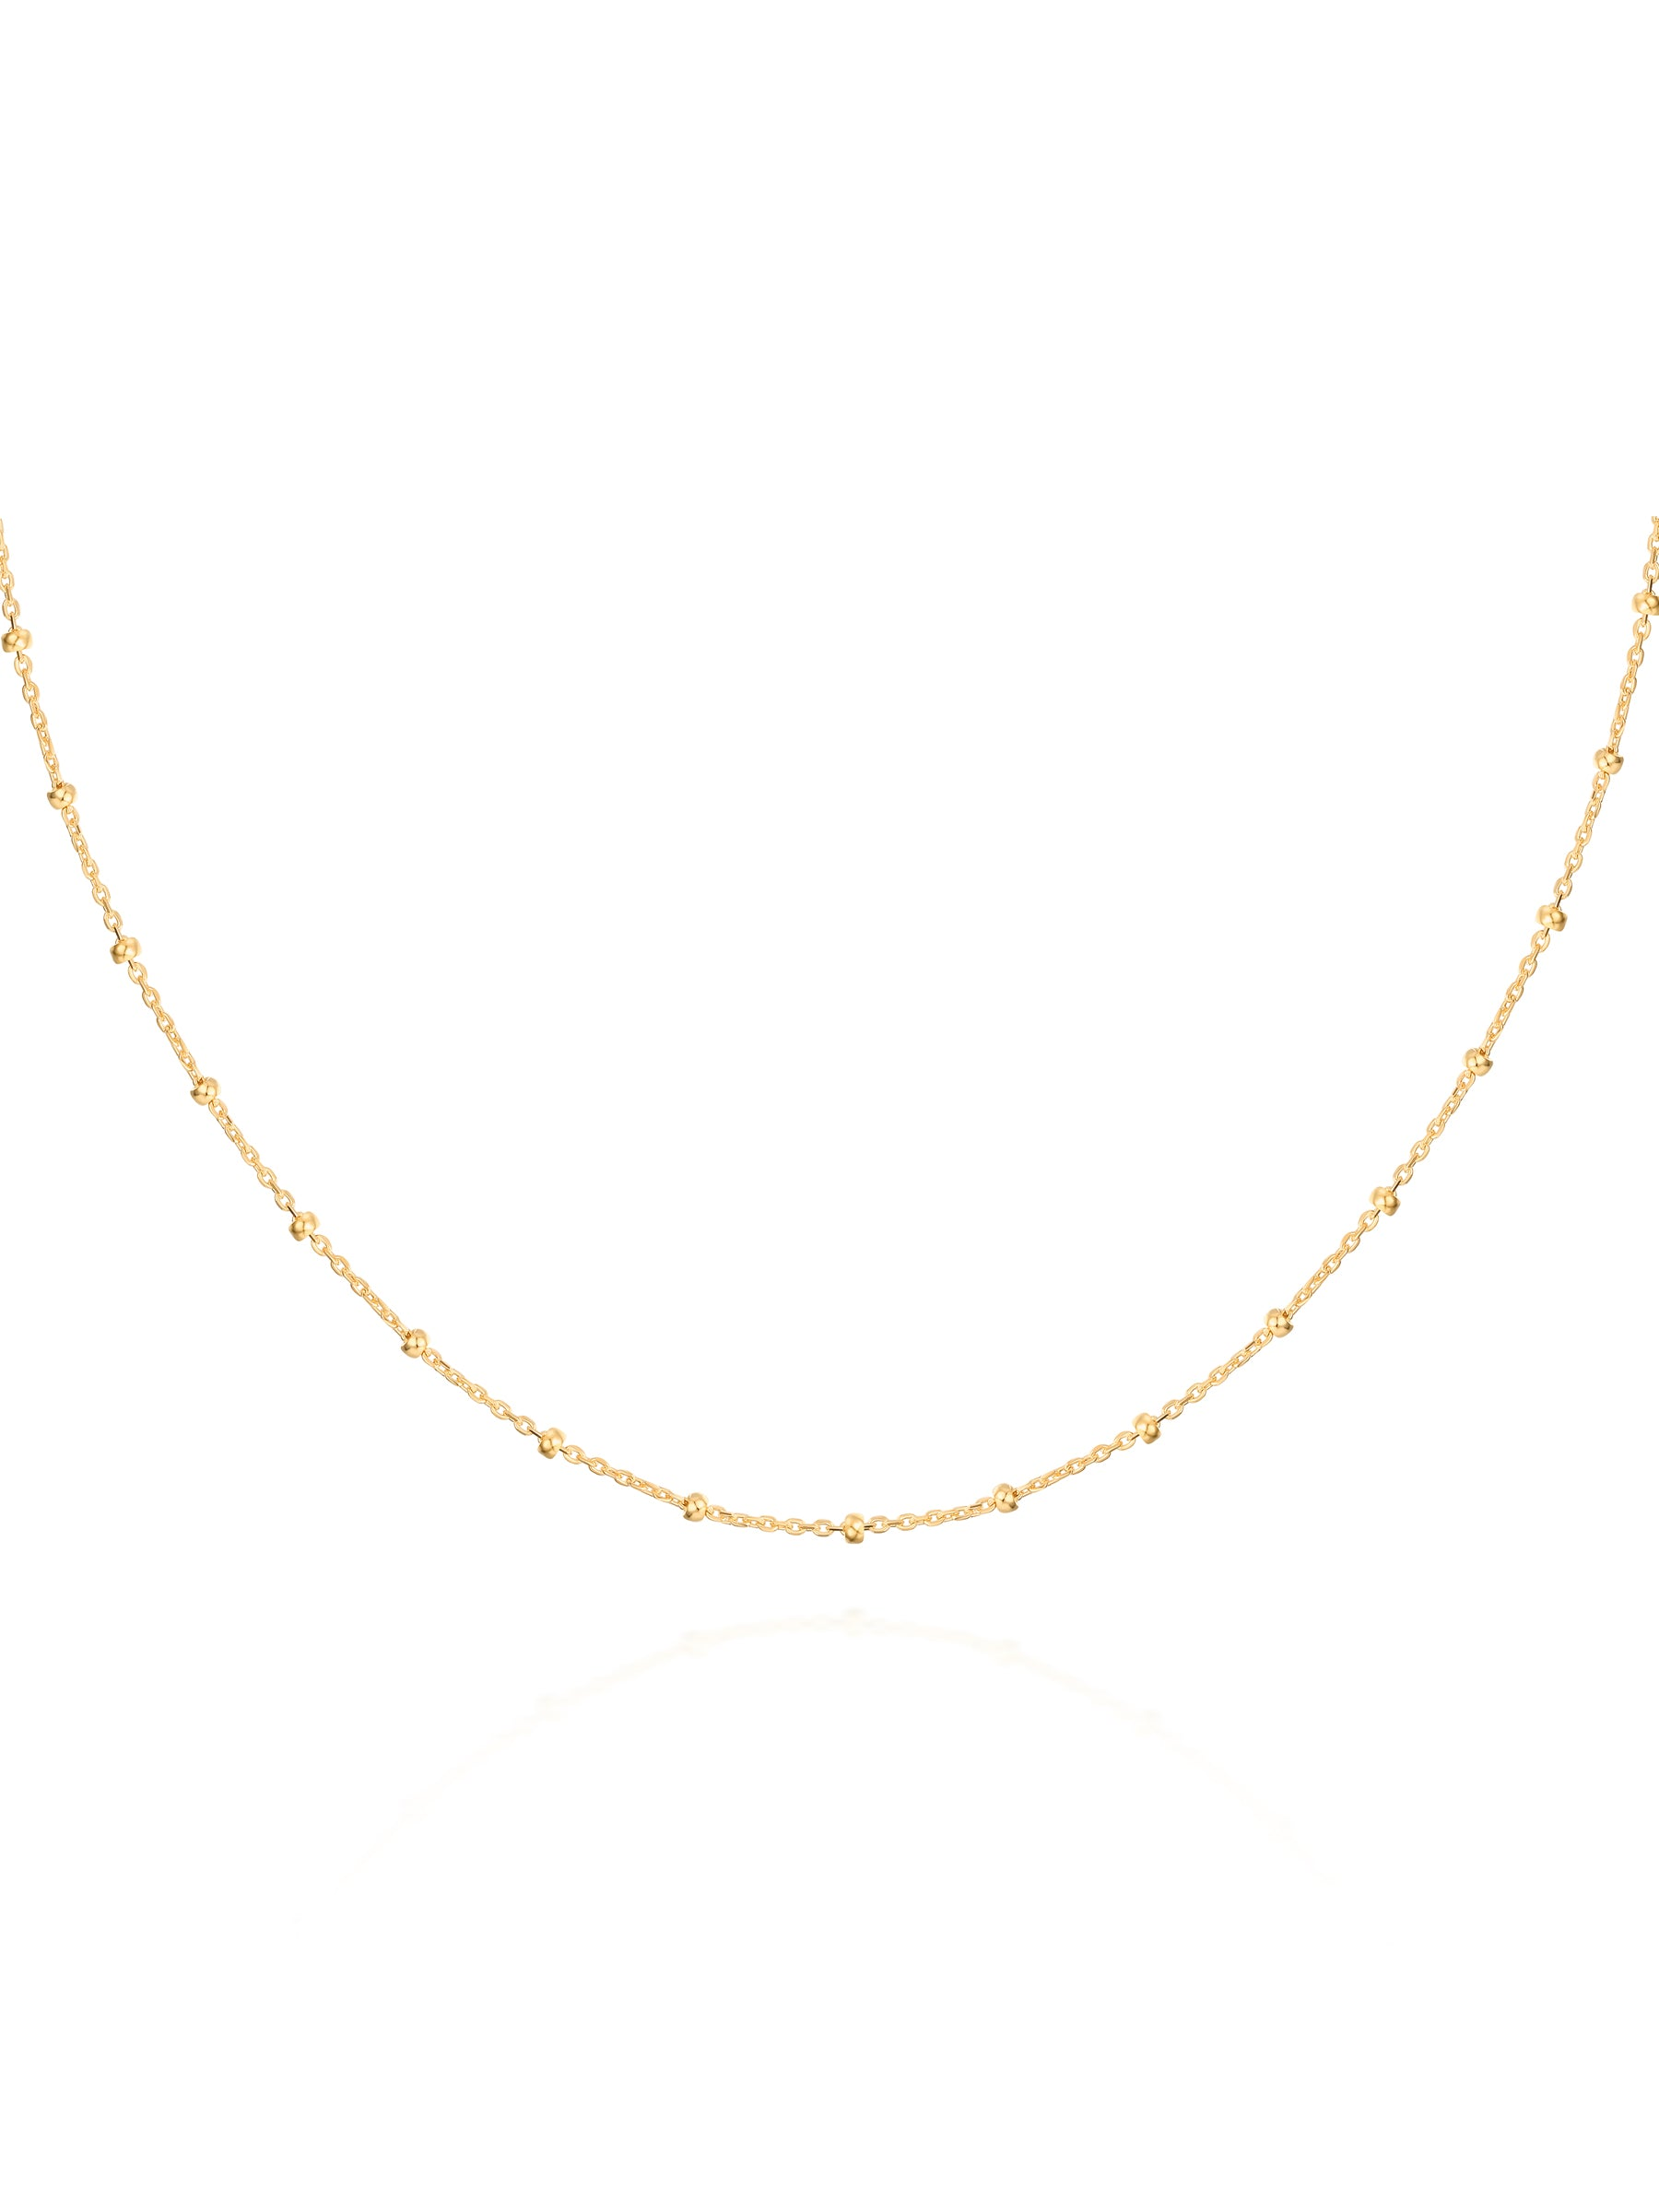 2-in-1 Long Satellite Necklace